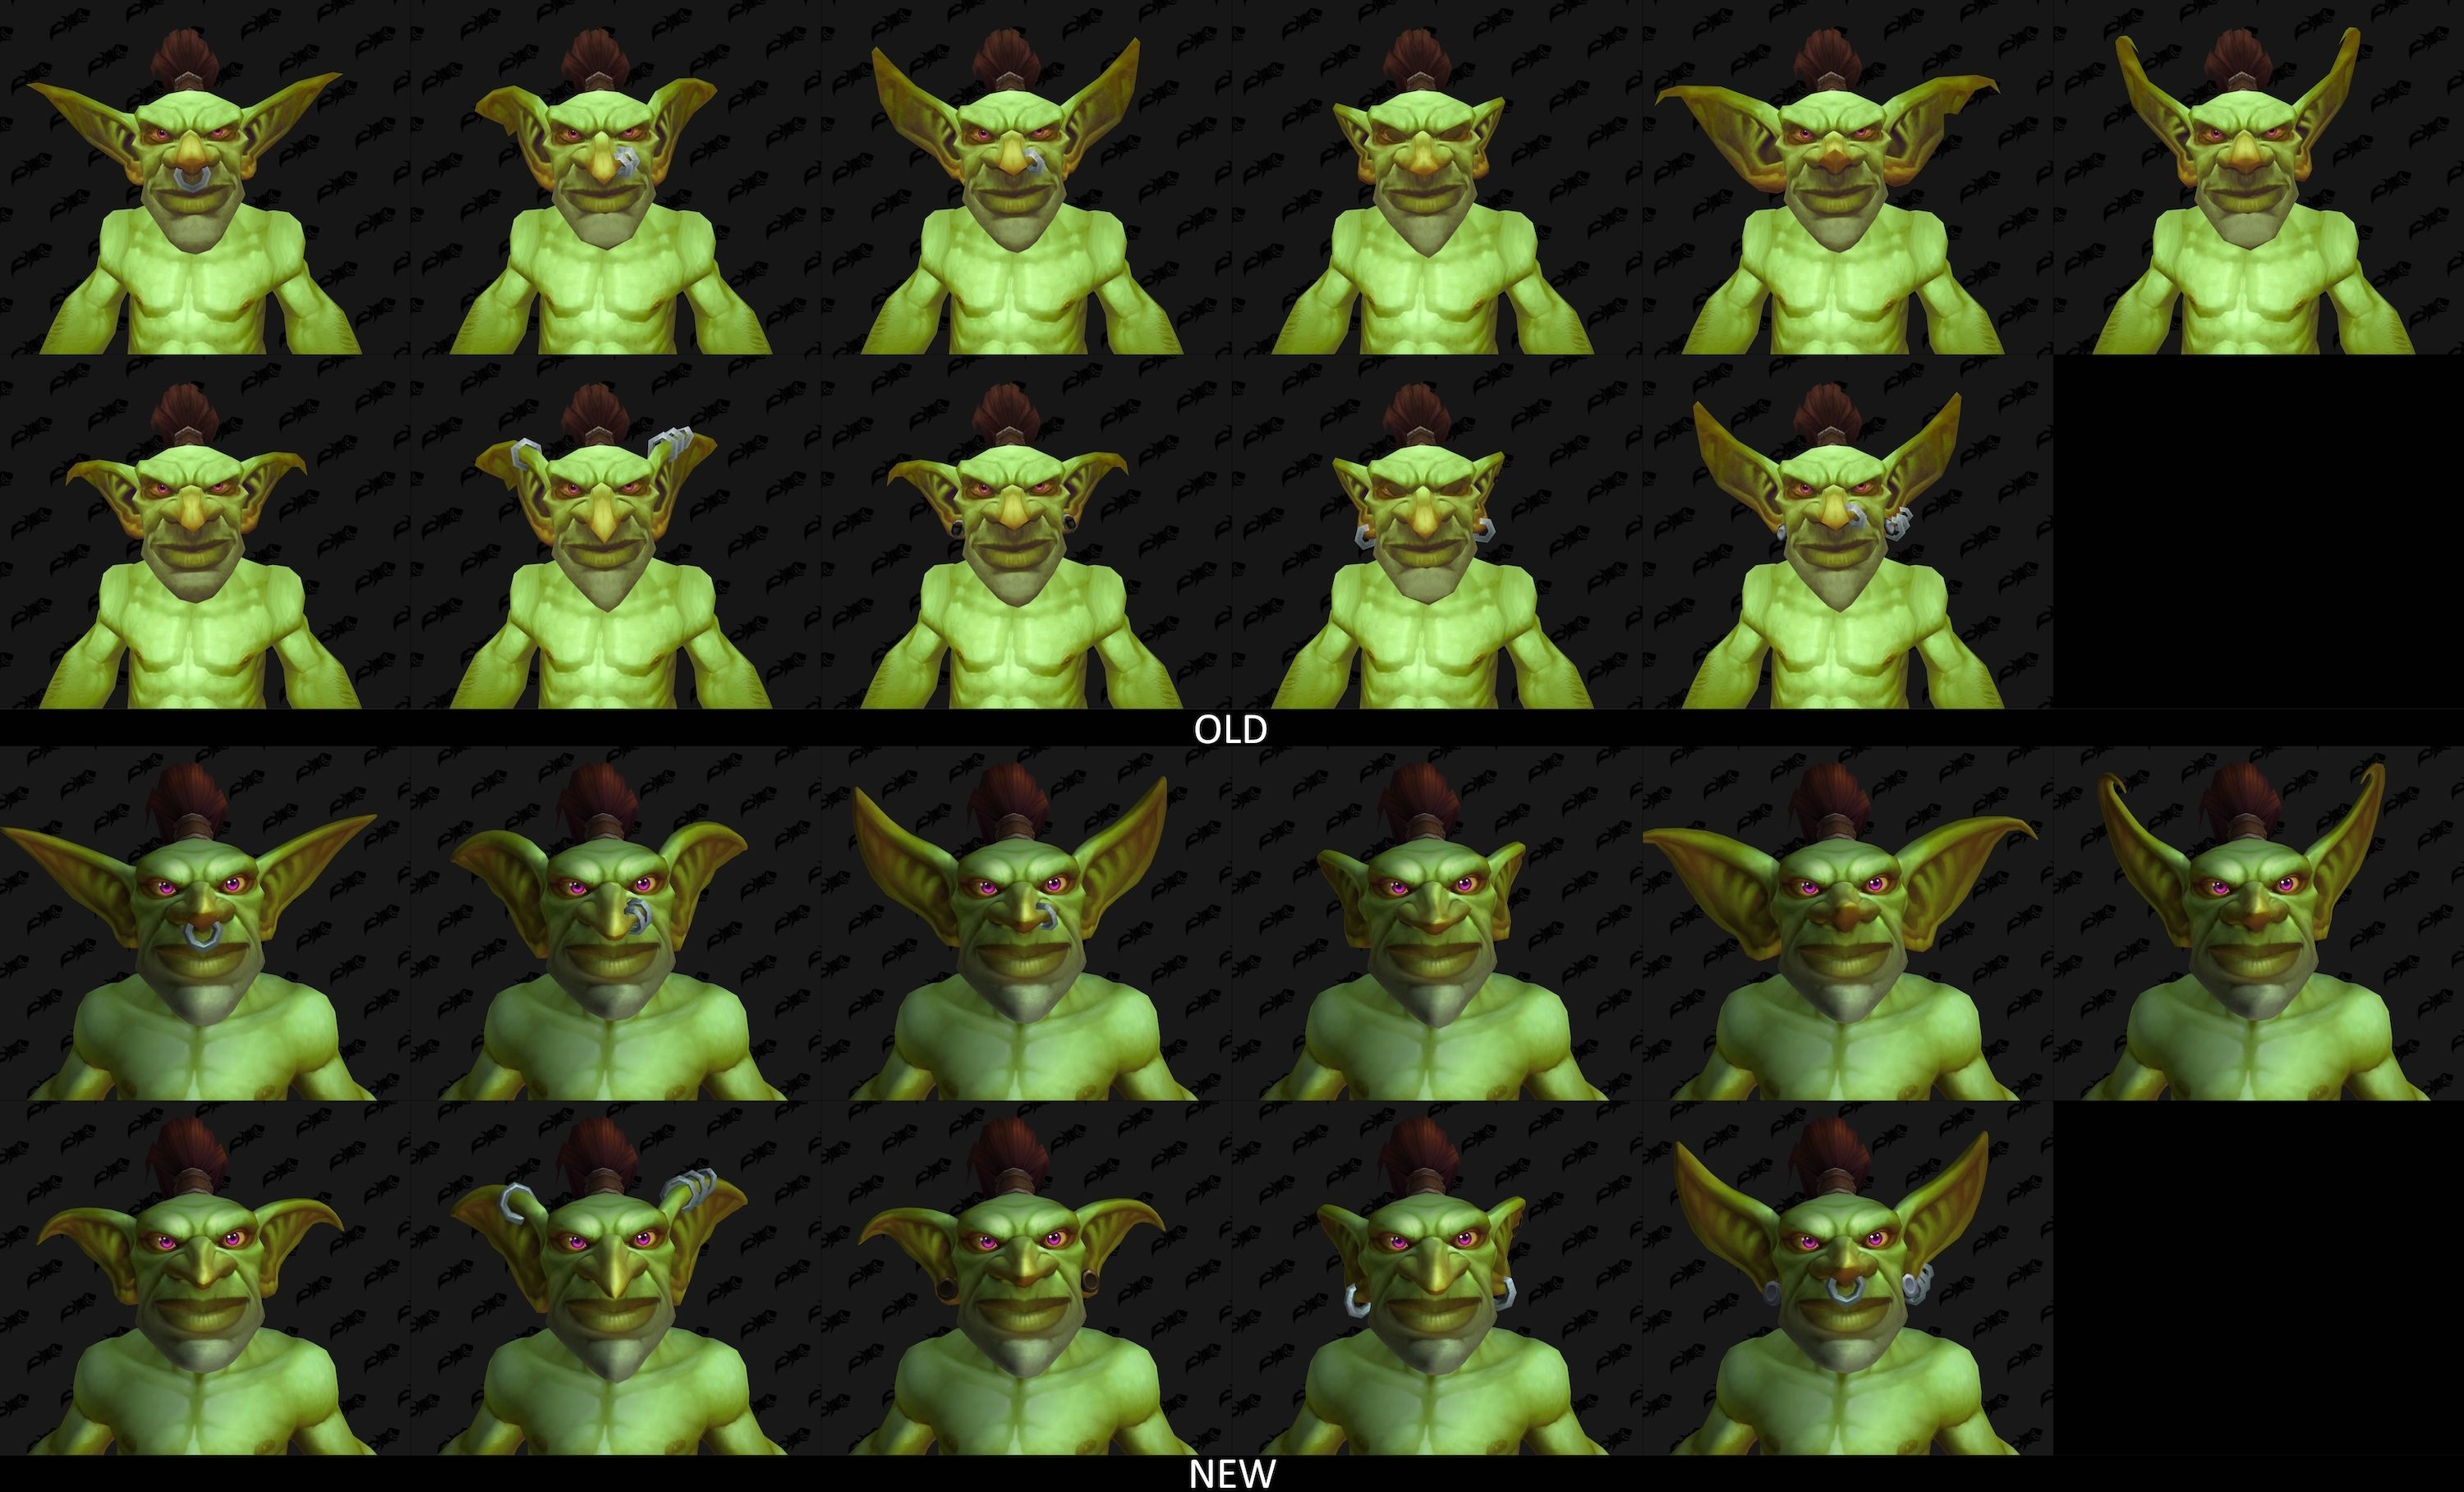 Updated Goblin Models in Patch 8 2 5 - Comparison with Old